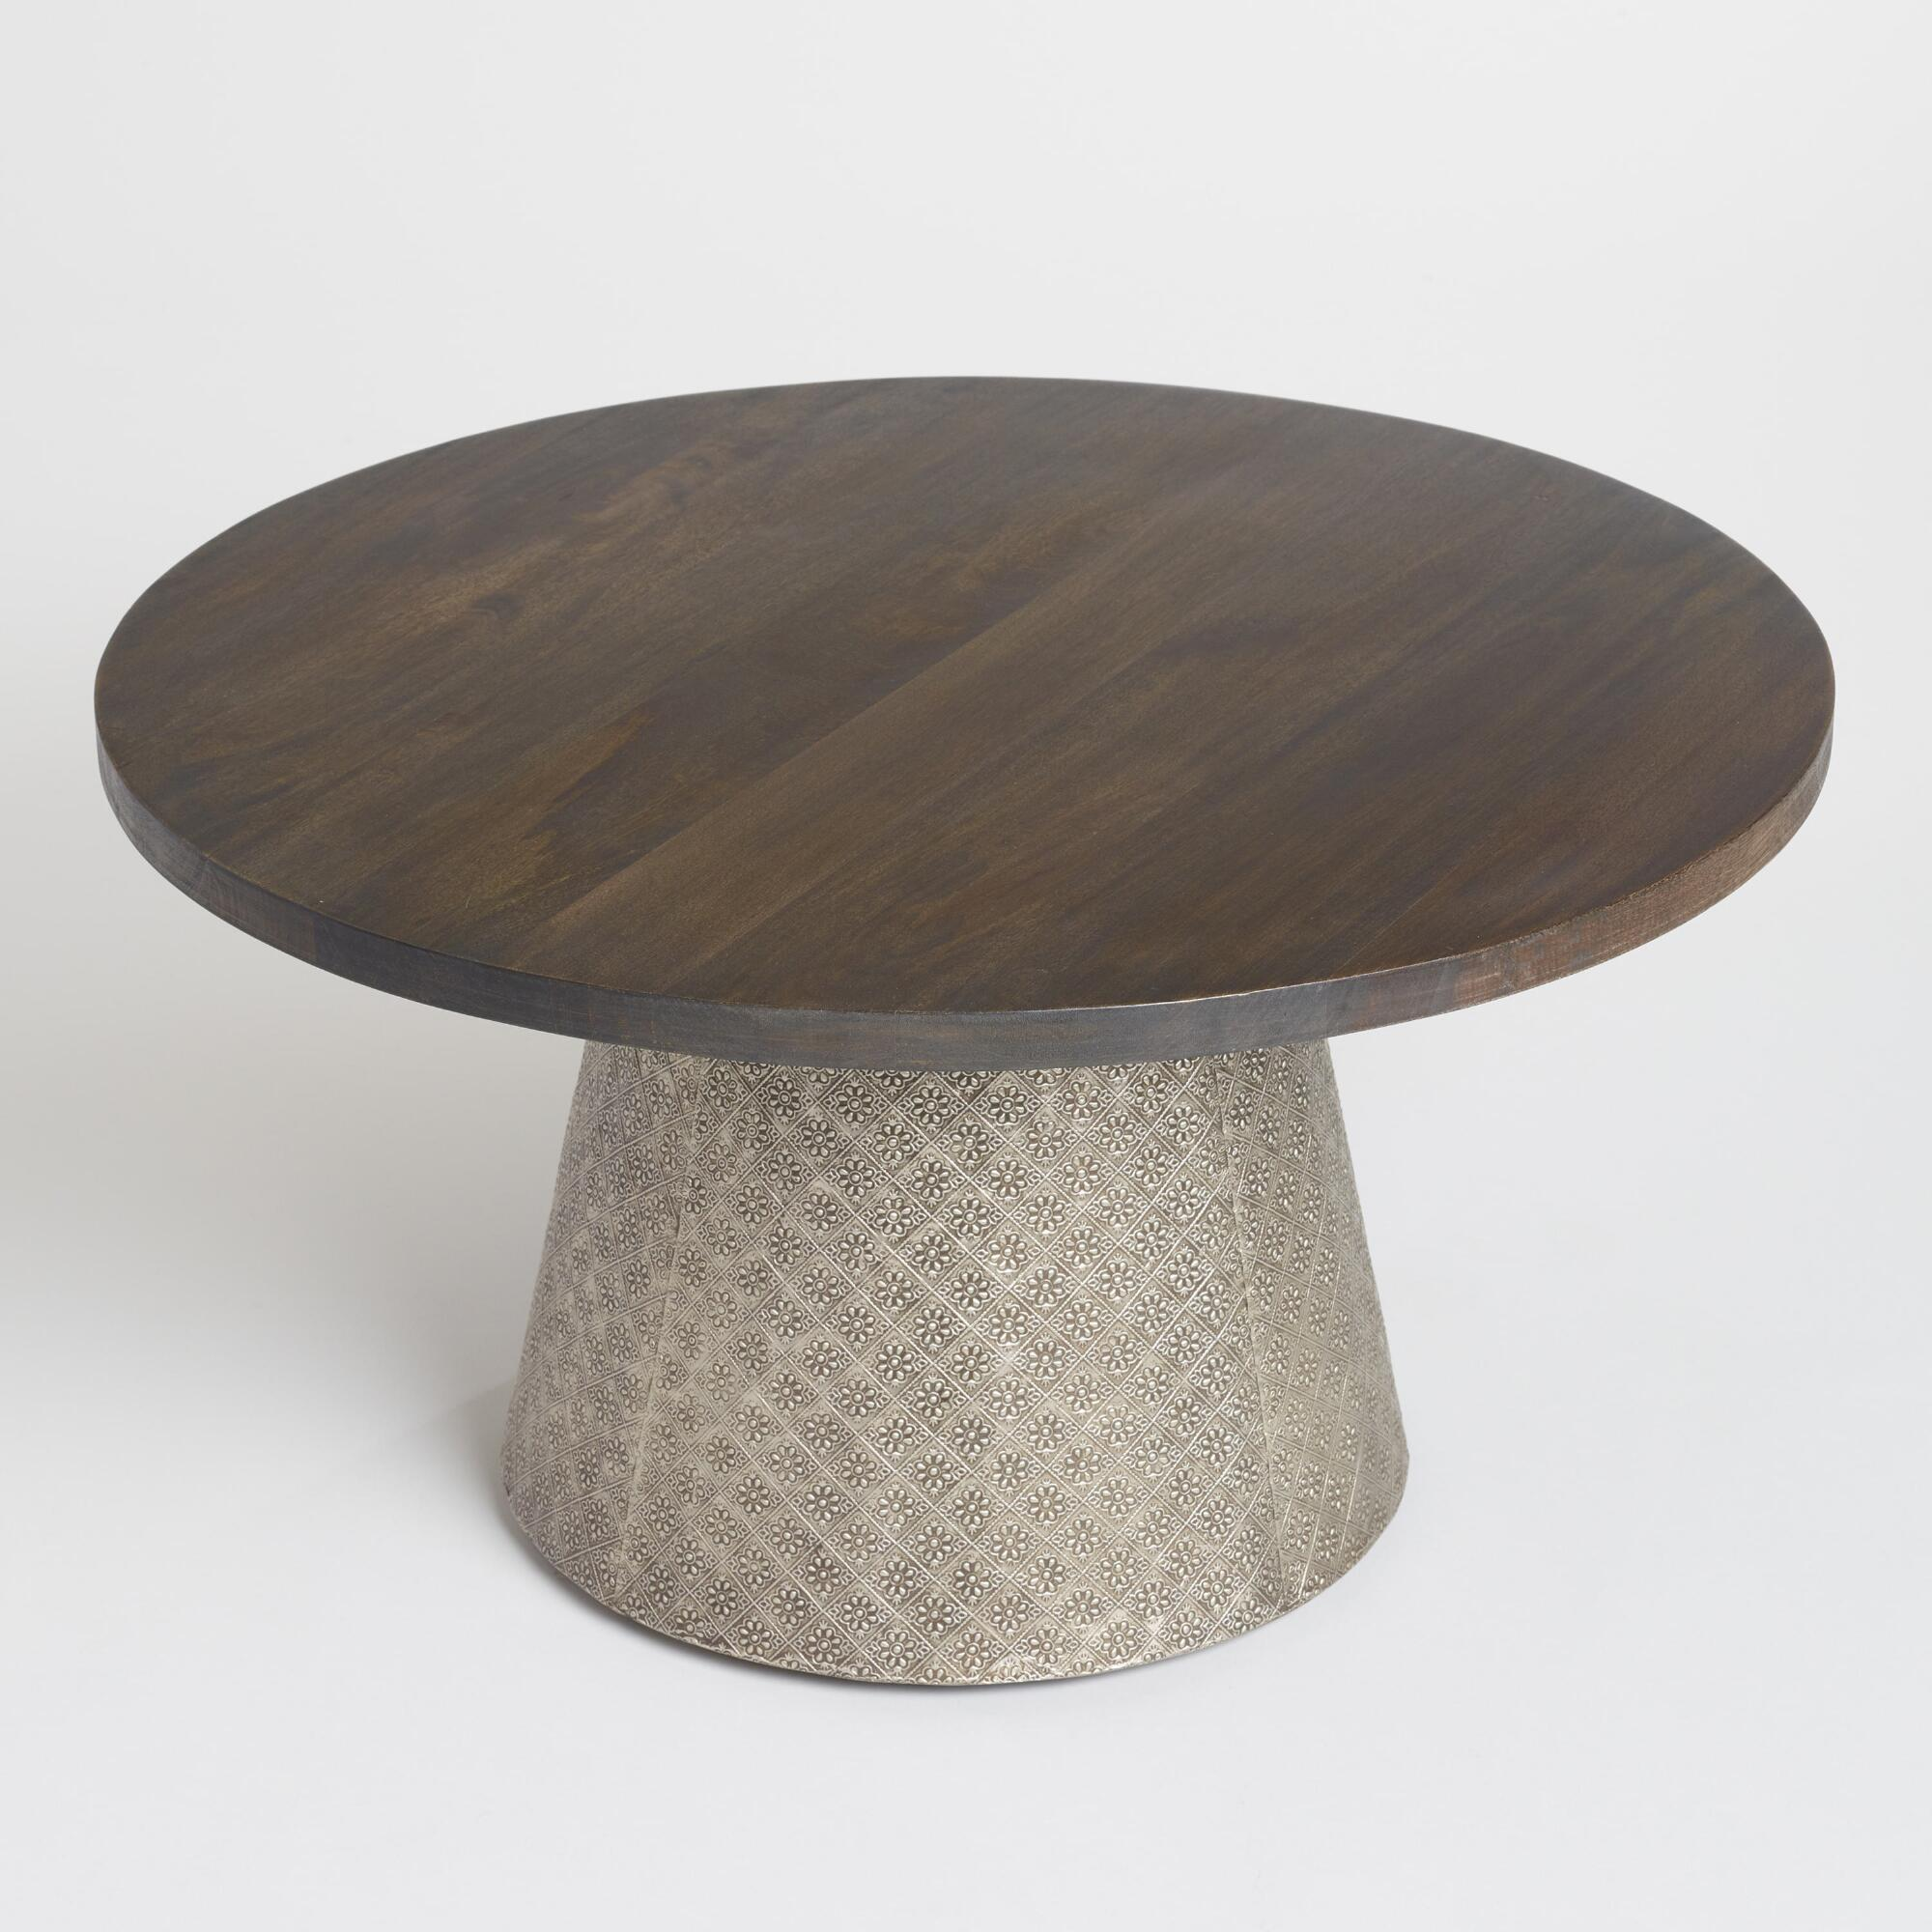 coffee tables end accent world market iipsrv fcgi tall chloe table round wood and embossed metal kiran brown wicker patio side rose gold target retro couch lamps covers white